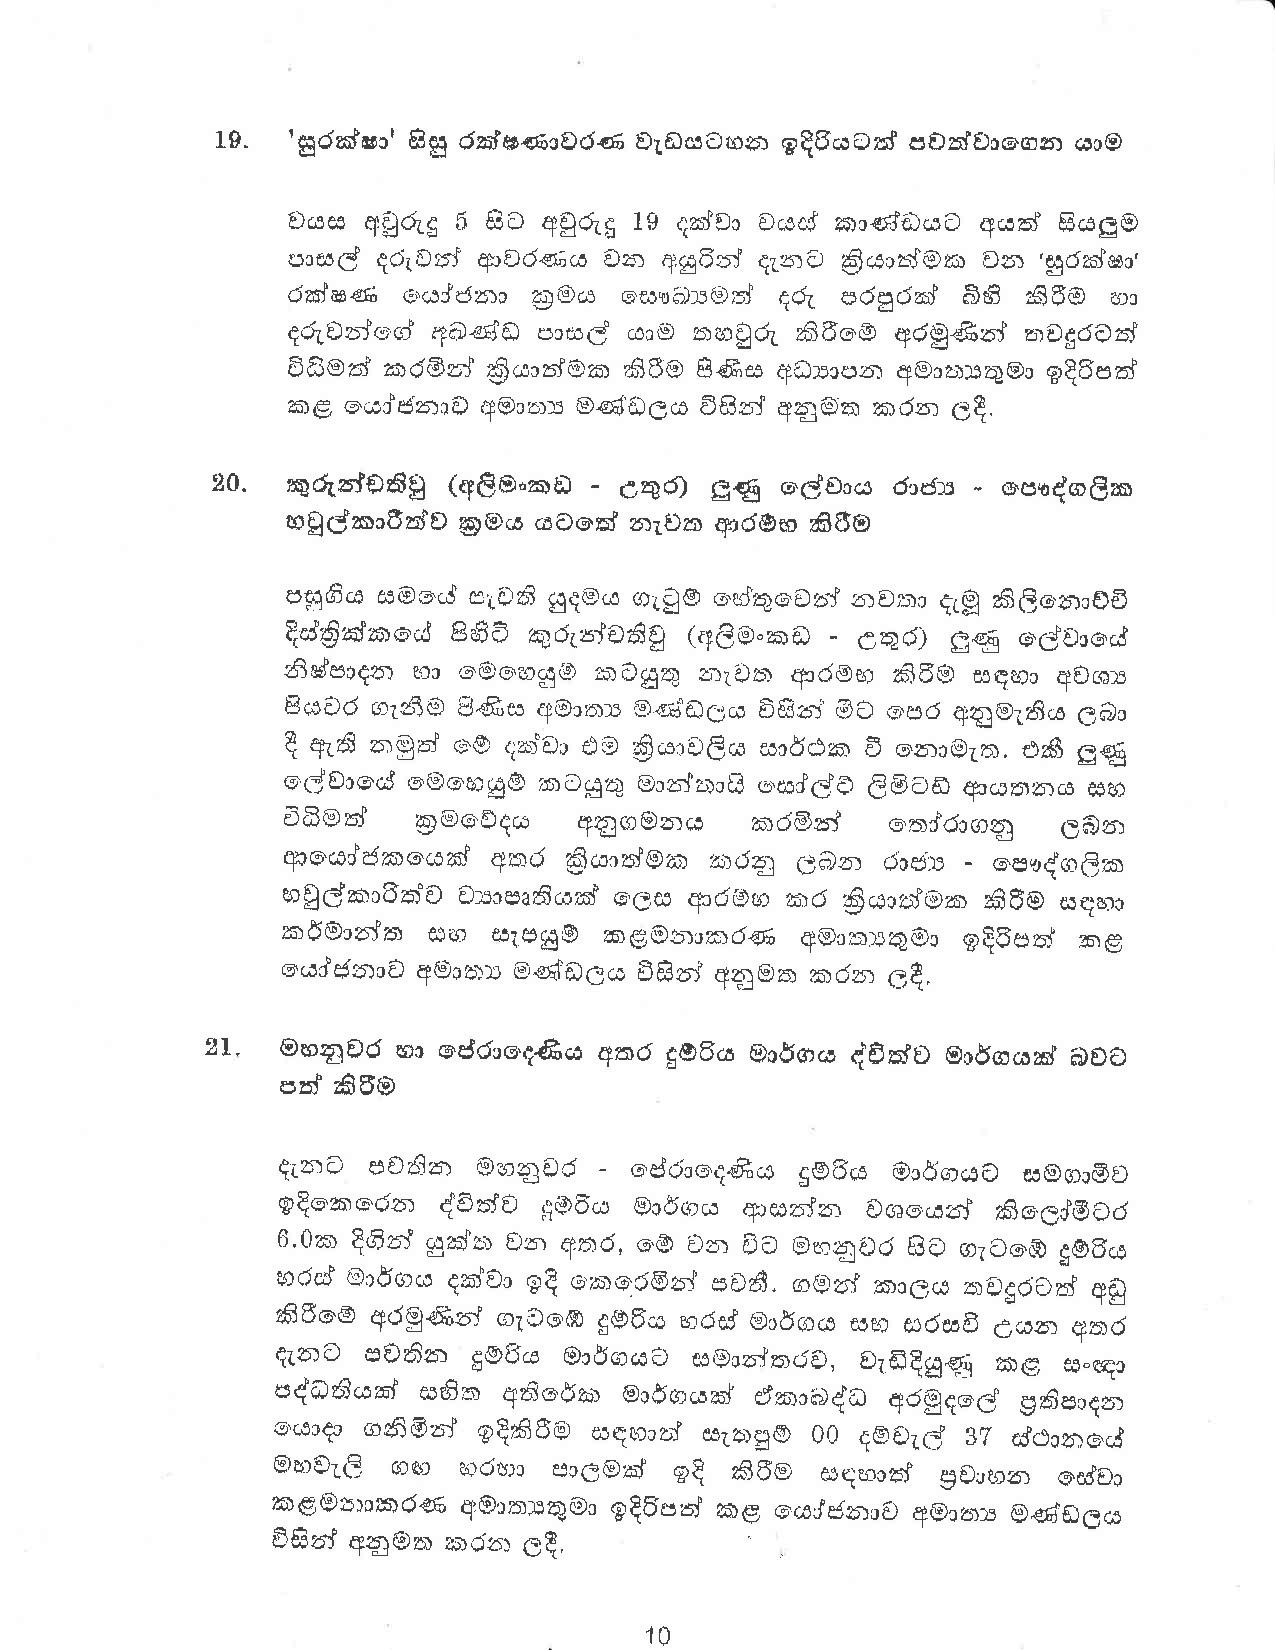 Cabinet Decision on 27.02.2020 page 010